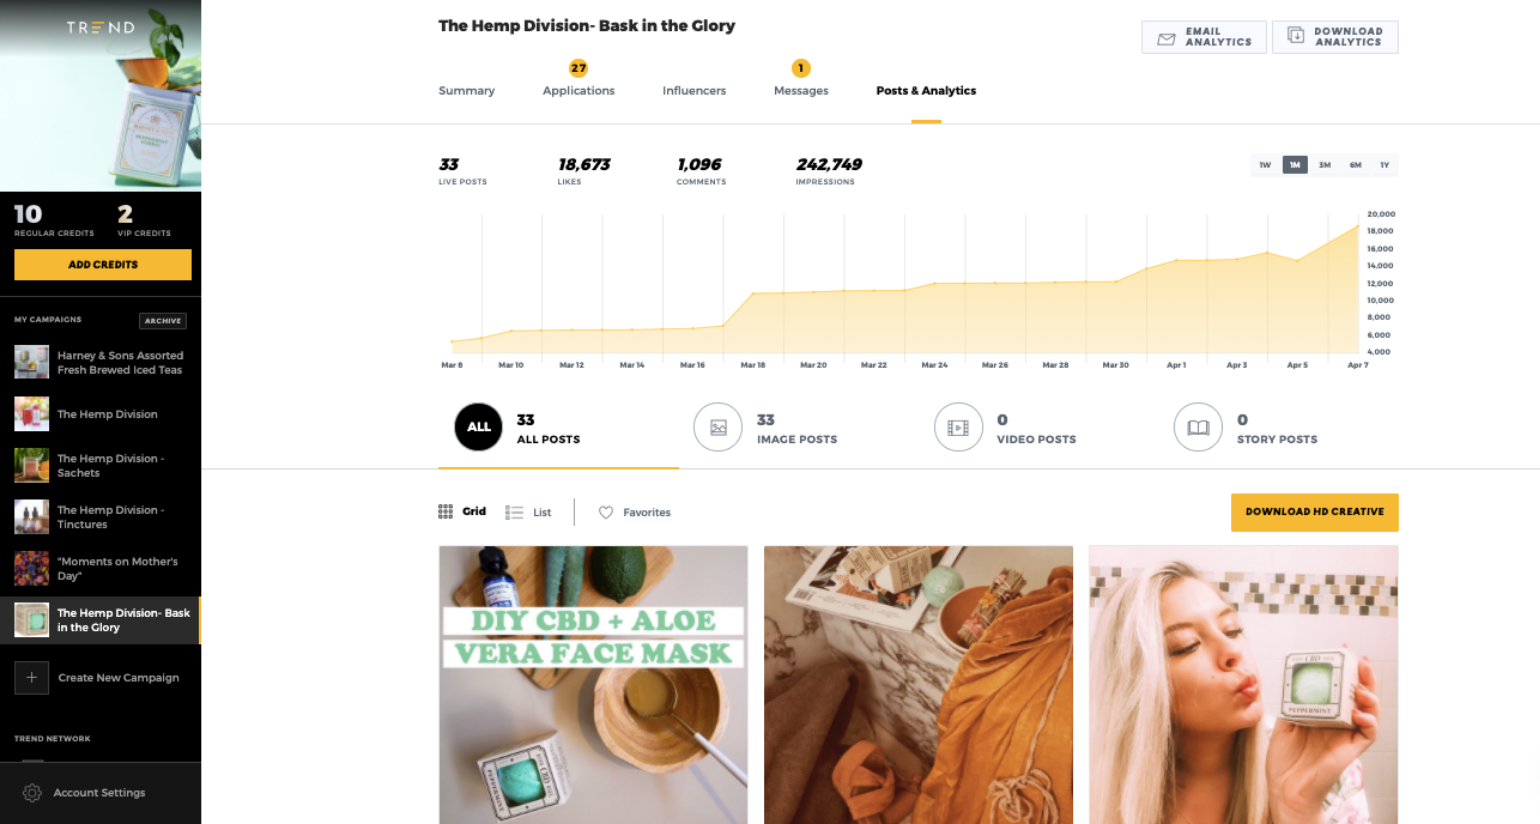 Example of analytics you may need for influencer marketing from Trend's platform